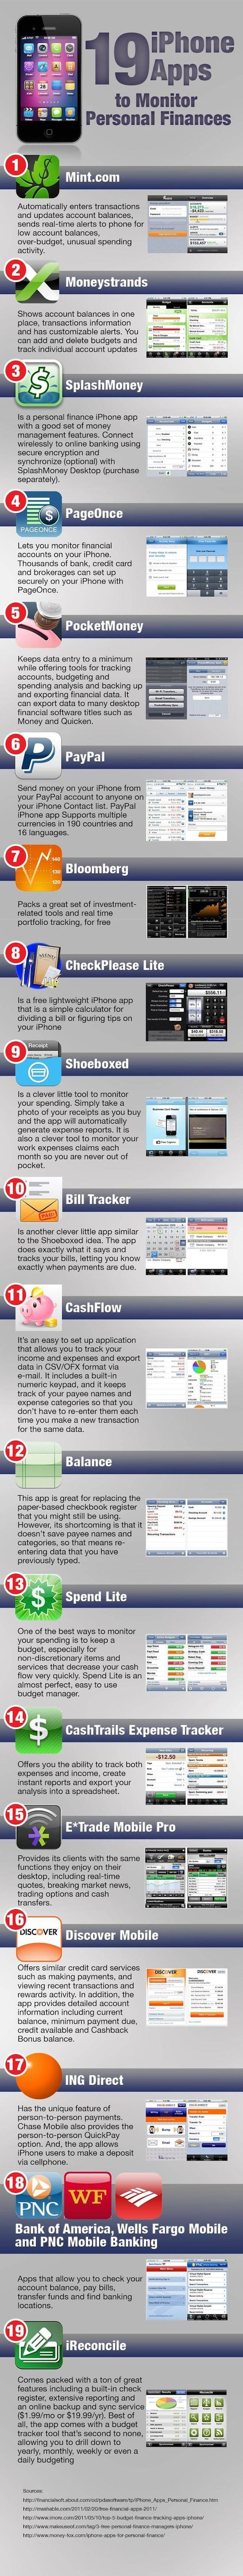 19 iPhone Apps to Monitor Personal Finances